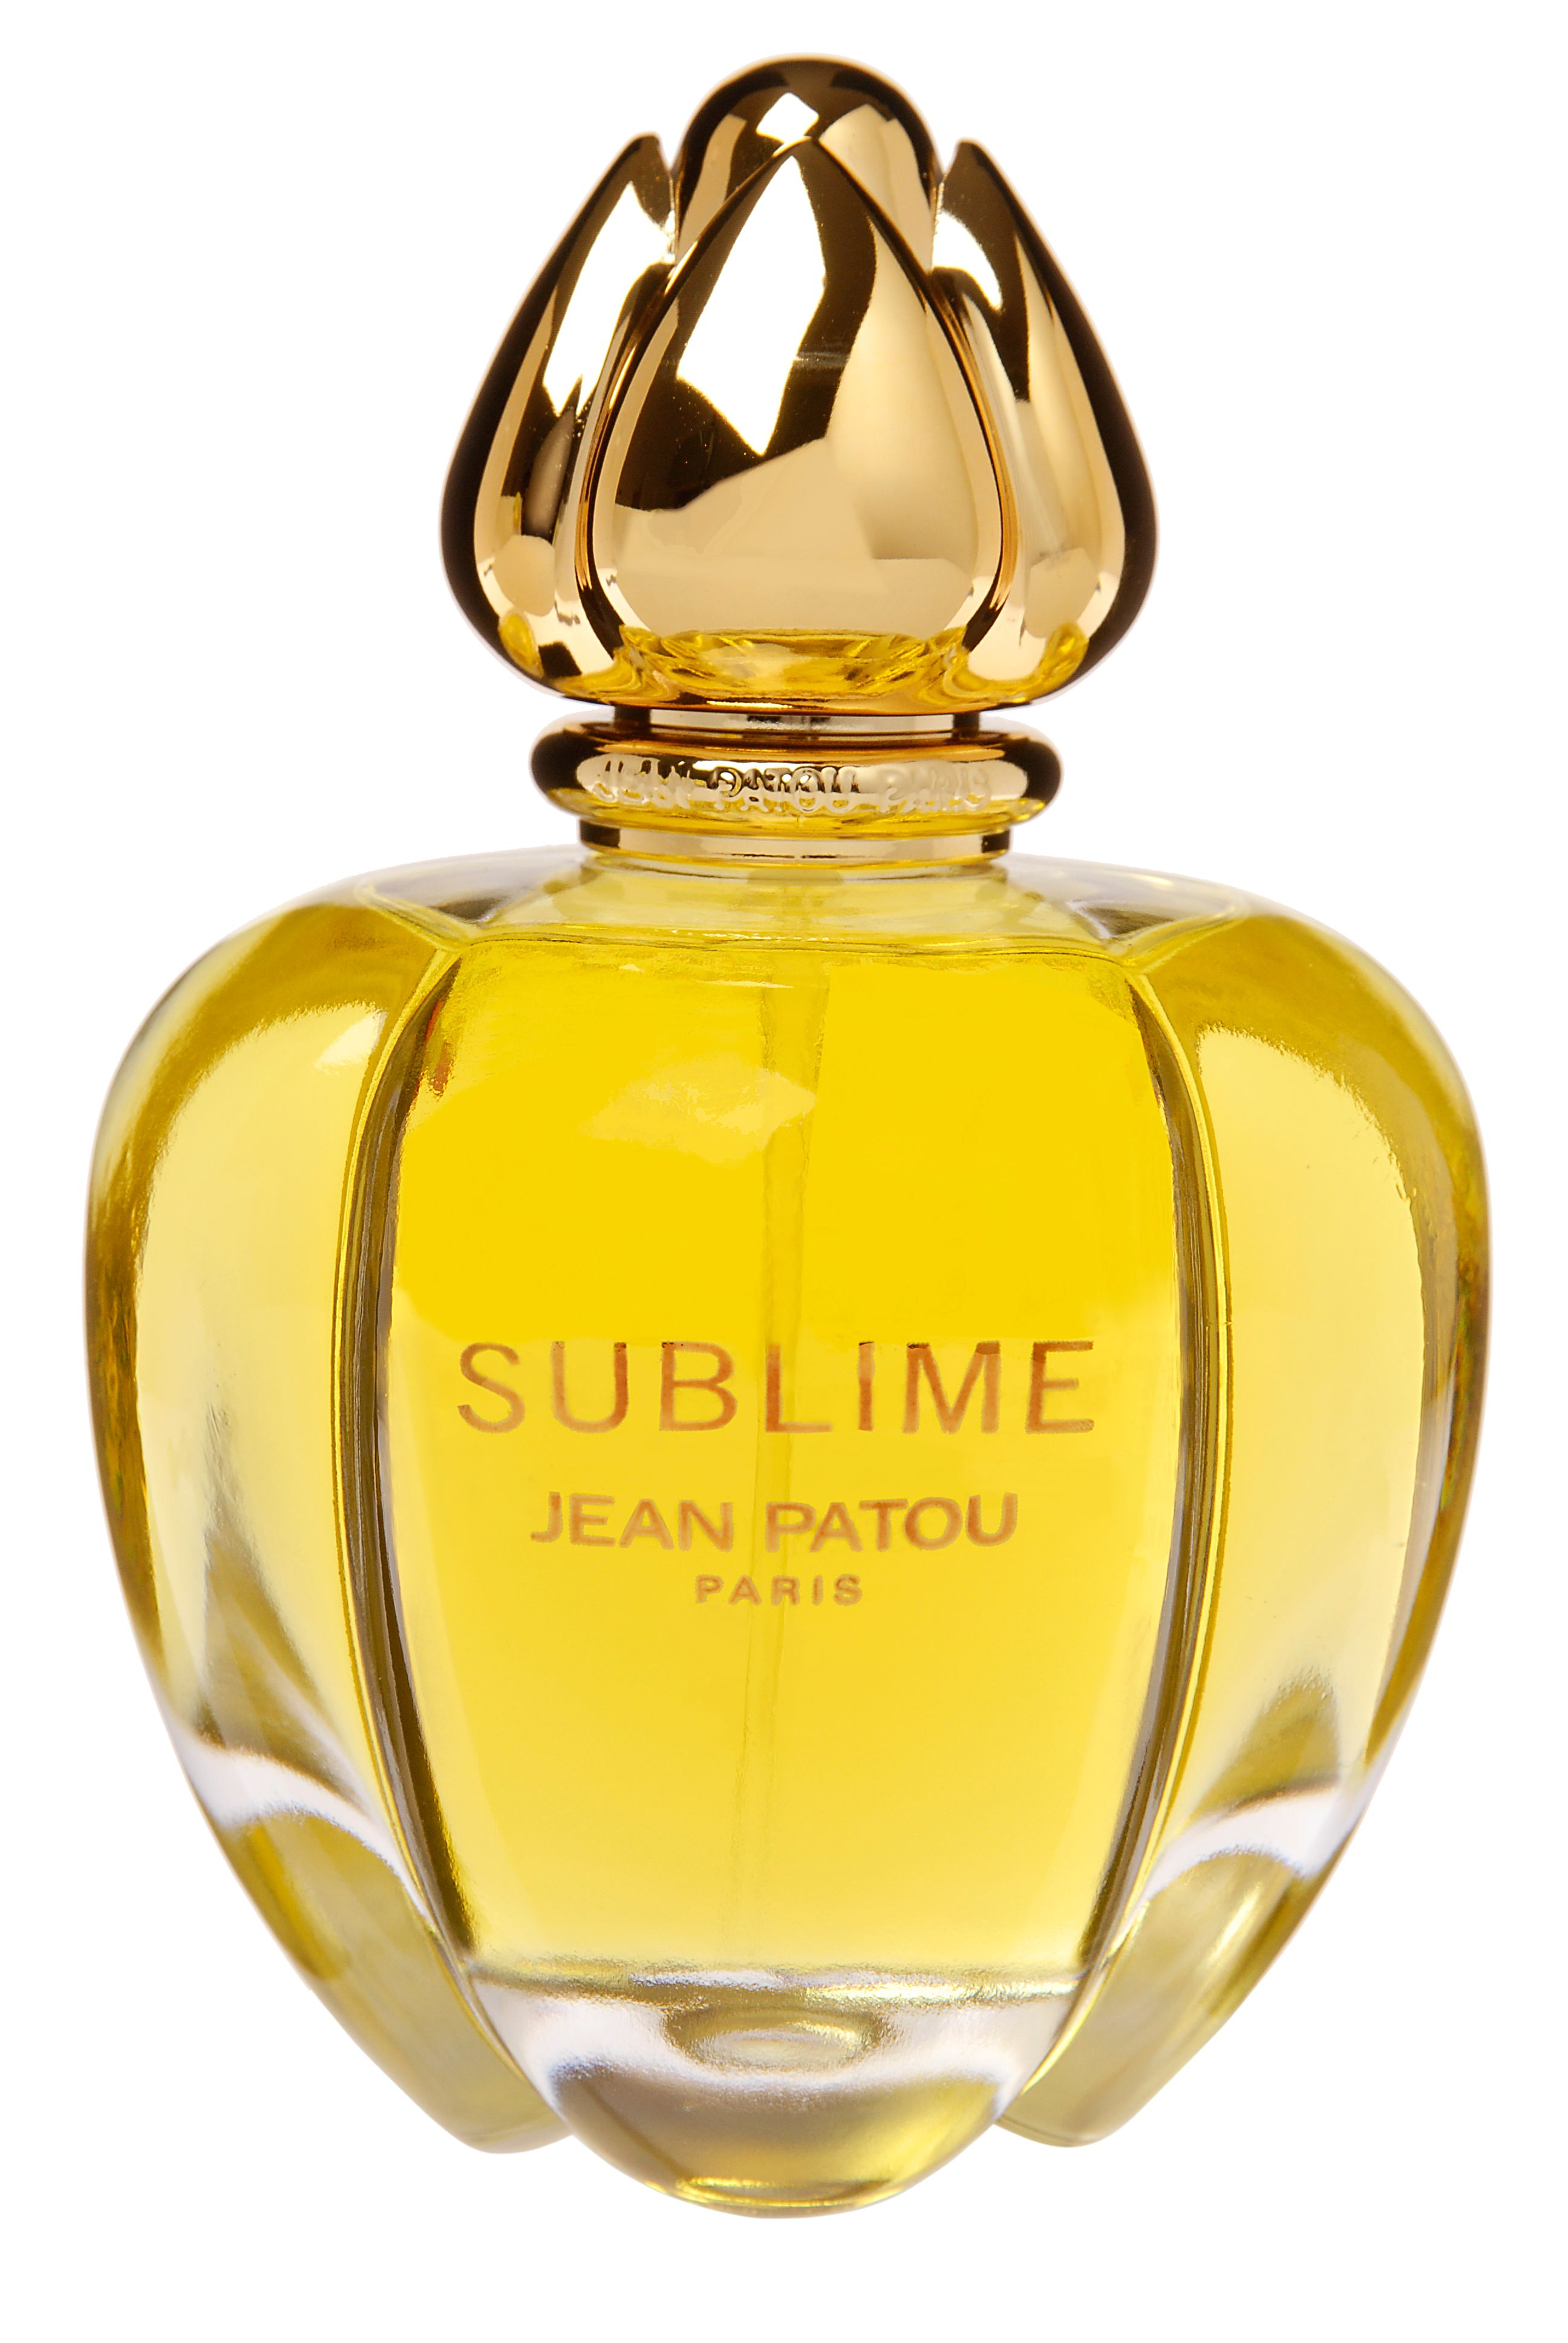 Jean Patou 100ml Sublime eau de toilet spray